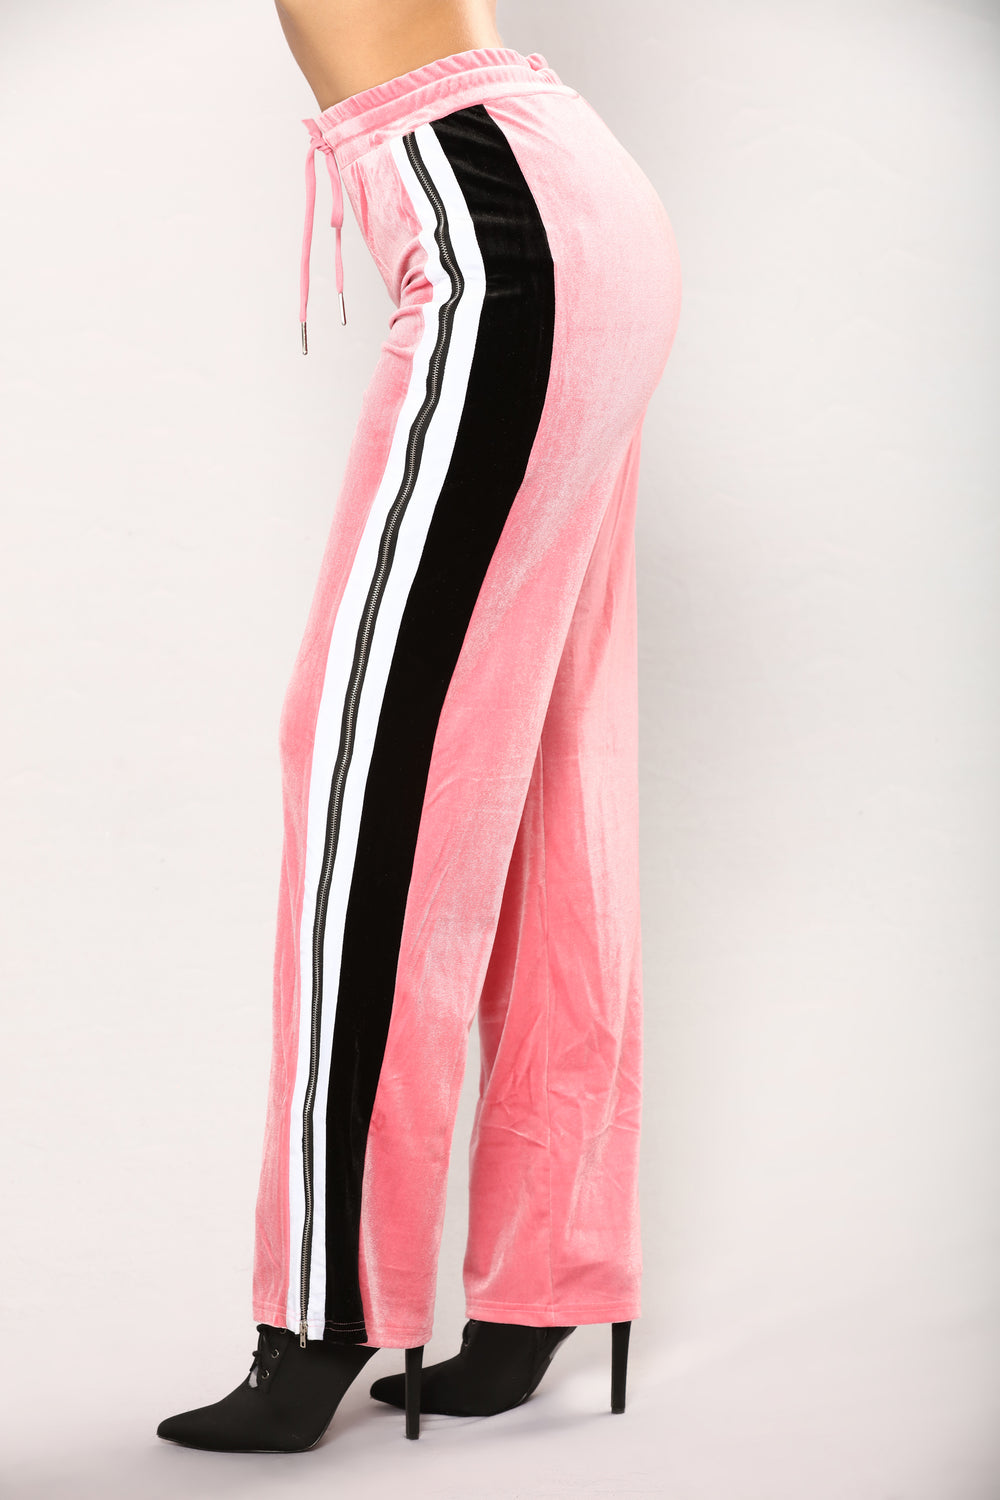 Becky Stripe Velour Lounge Pants - Pink